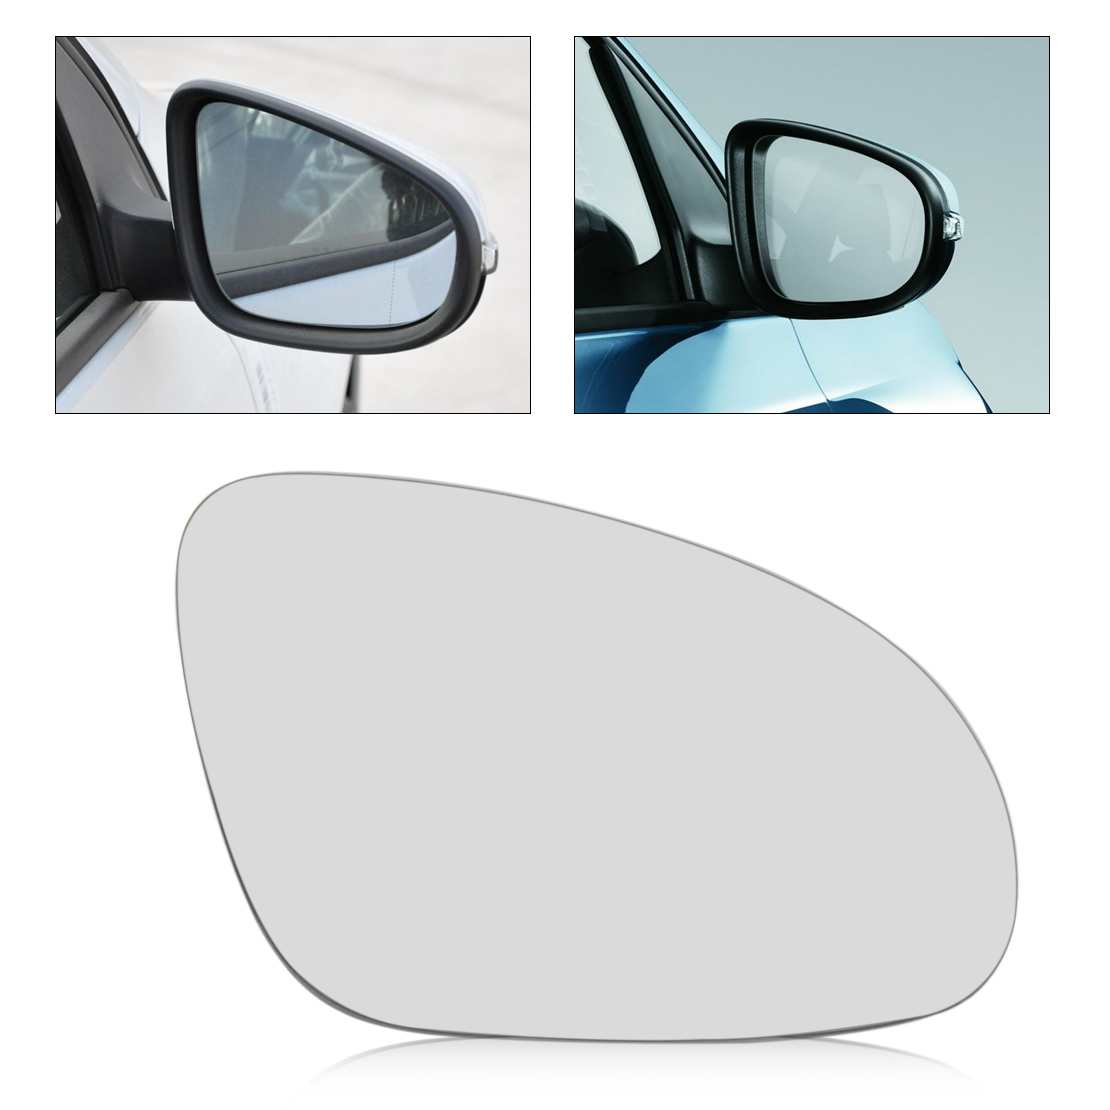 jetta side mirror